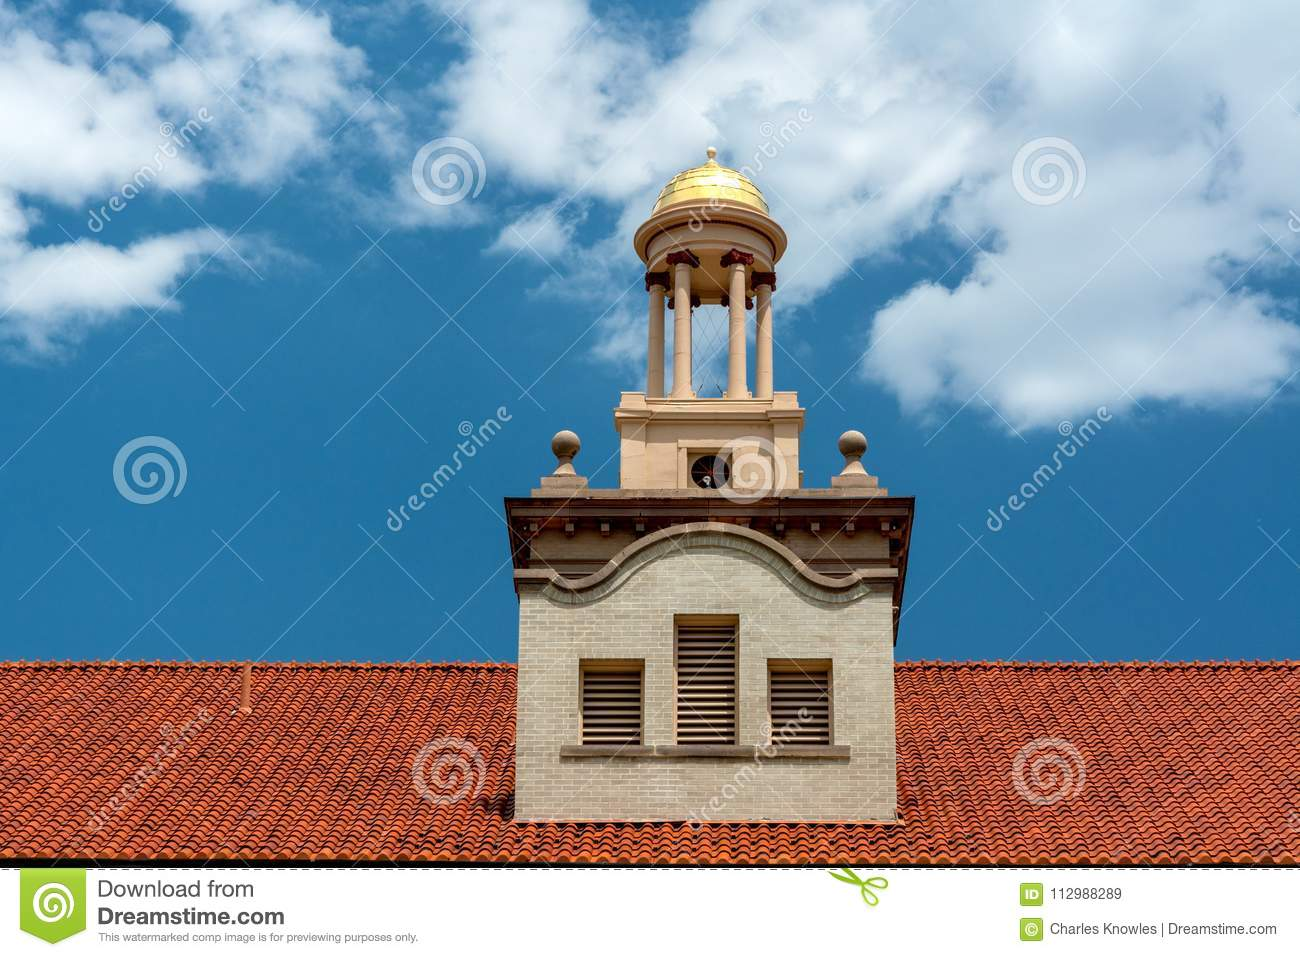 Gold dome on the top of a red roofed administration building on